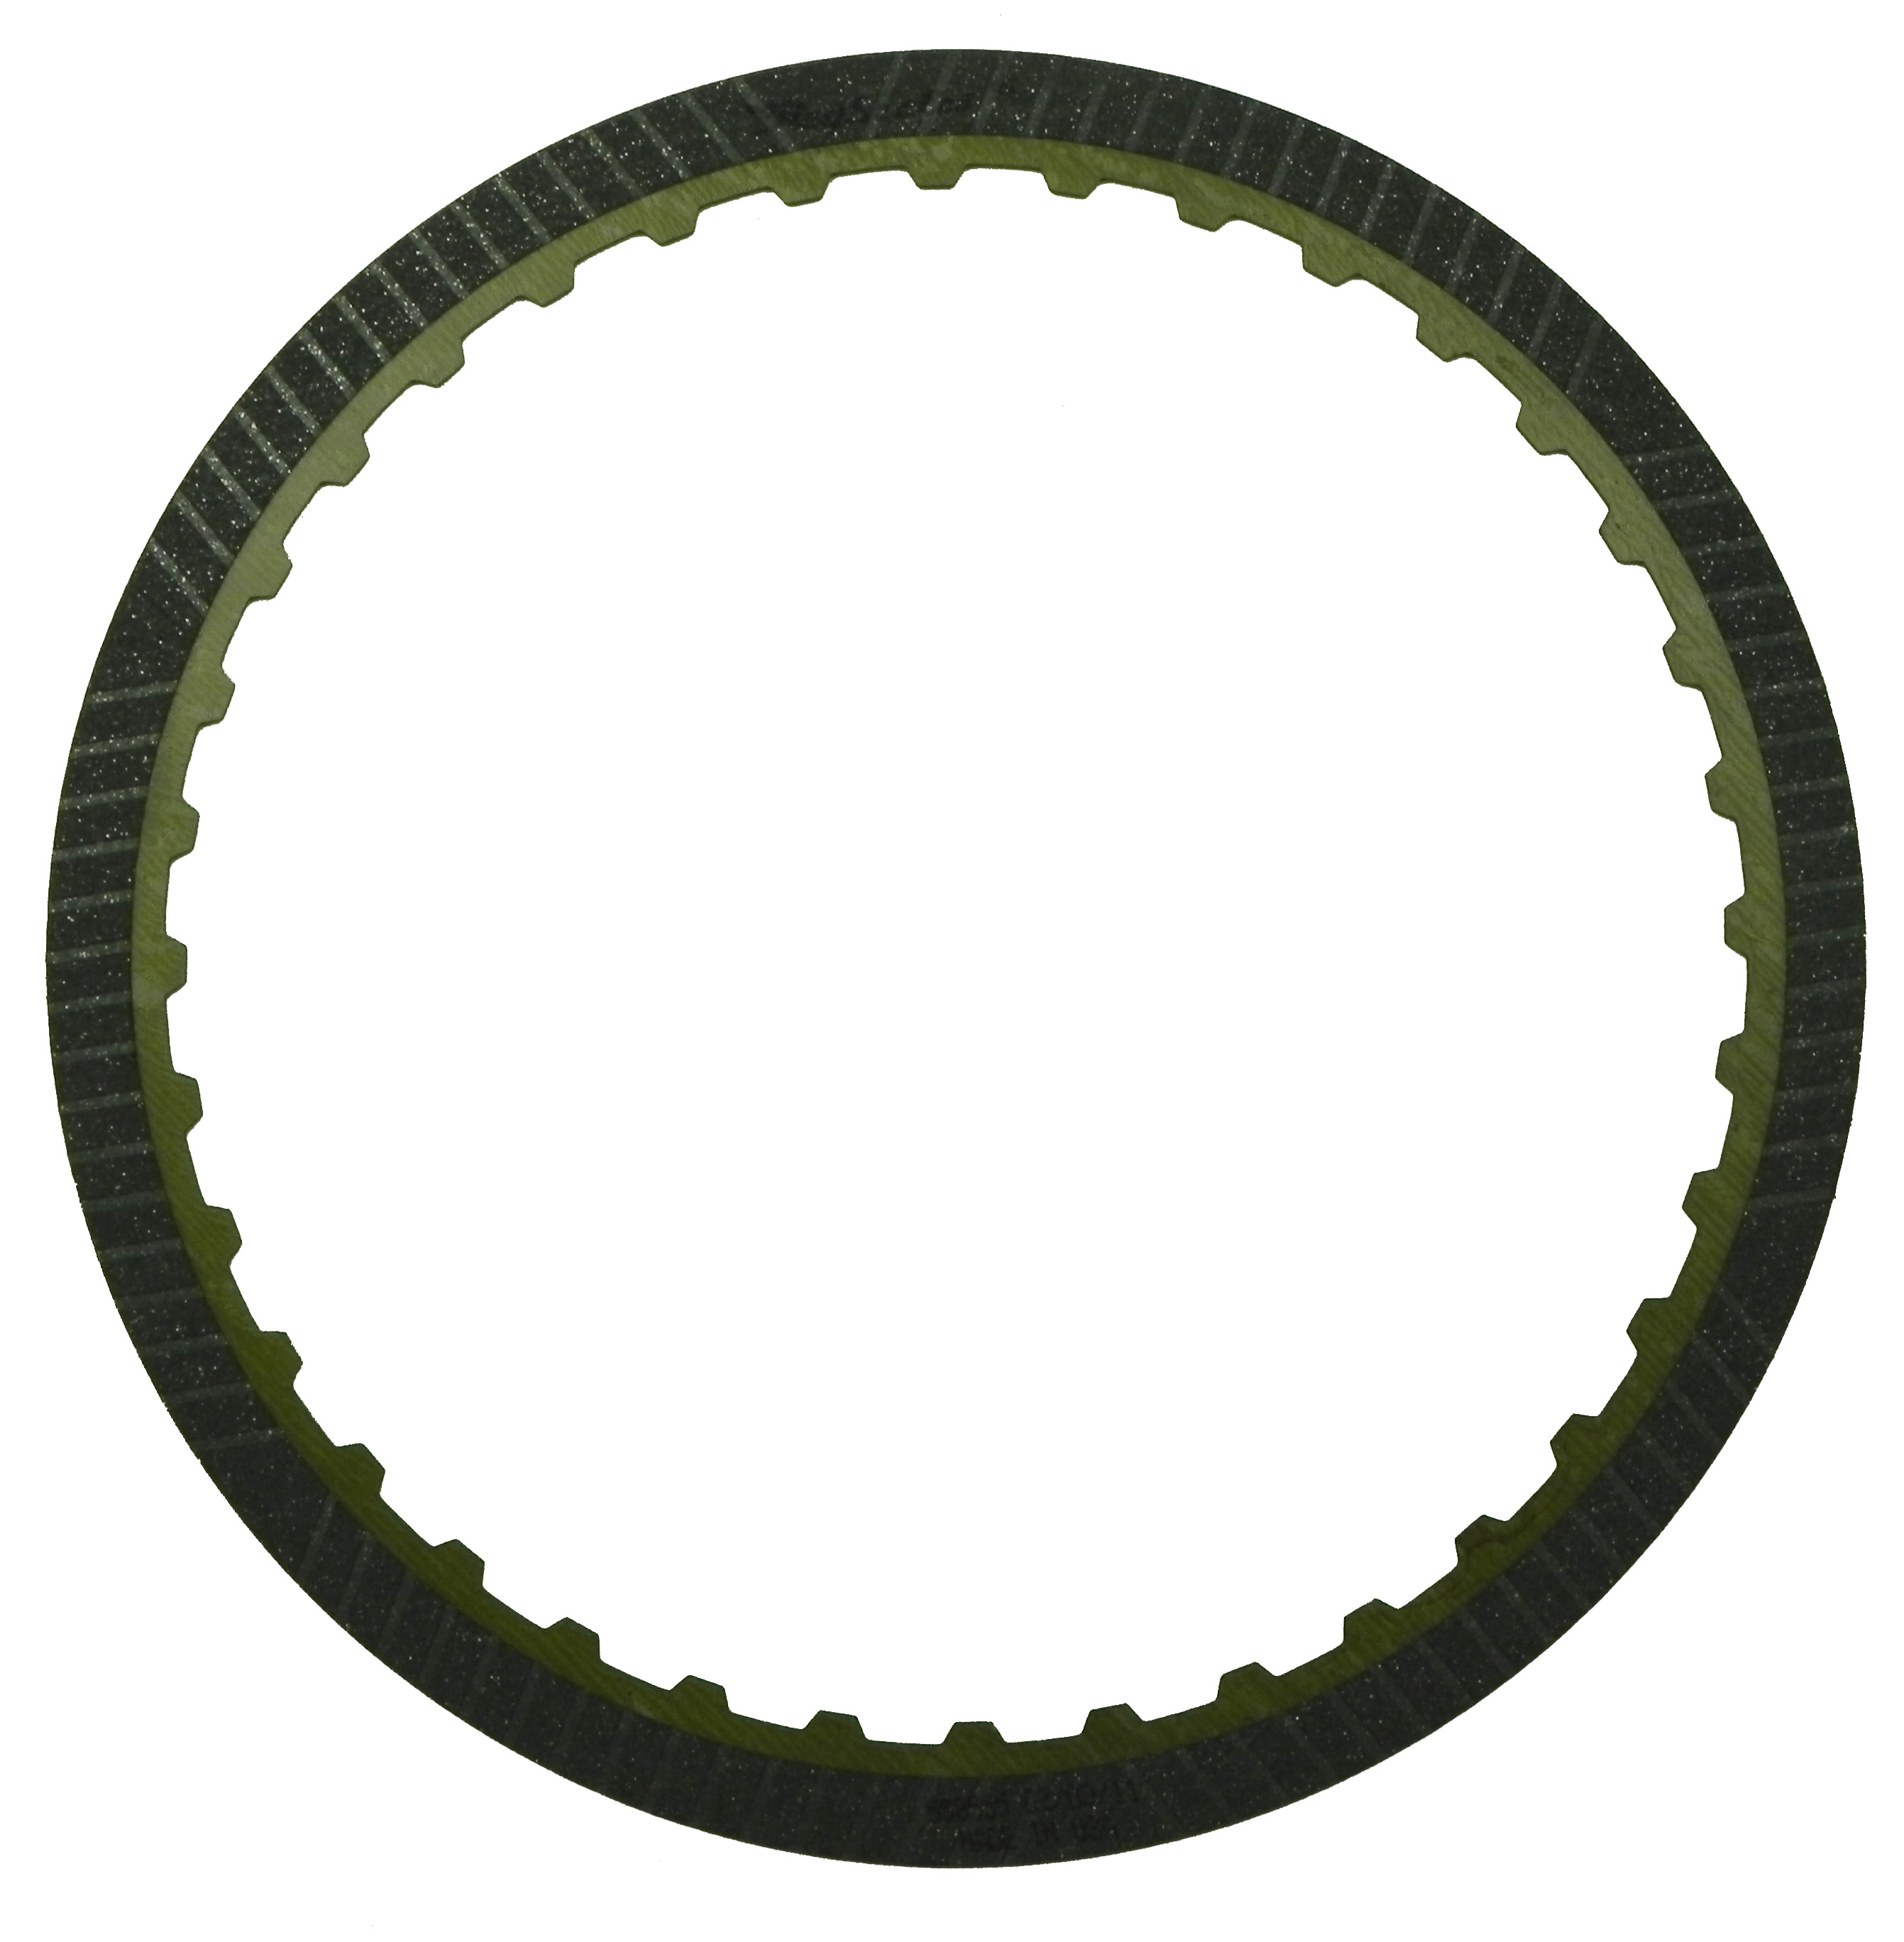 R558555 | 2007-ON Friction Clutch Plate High Energy 3rd, 5th, Reverse High Energy